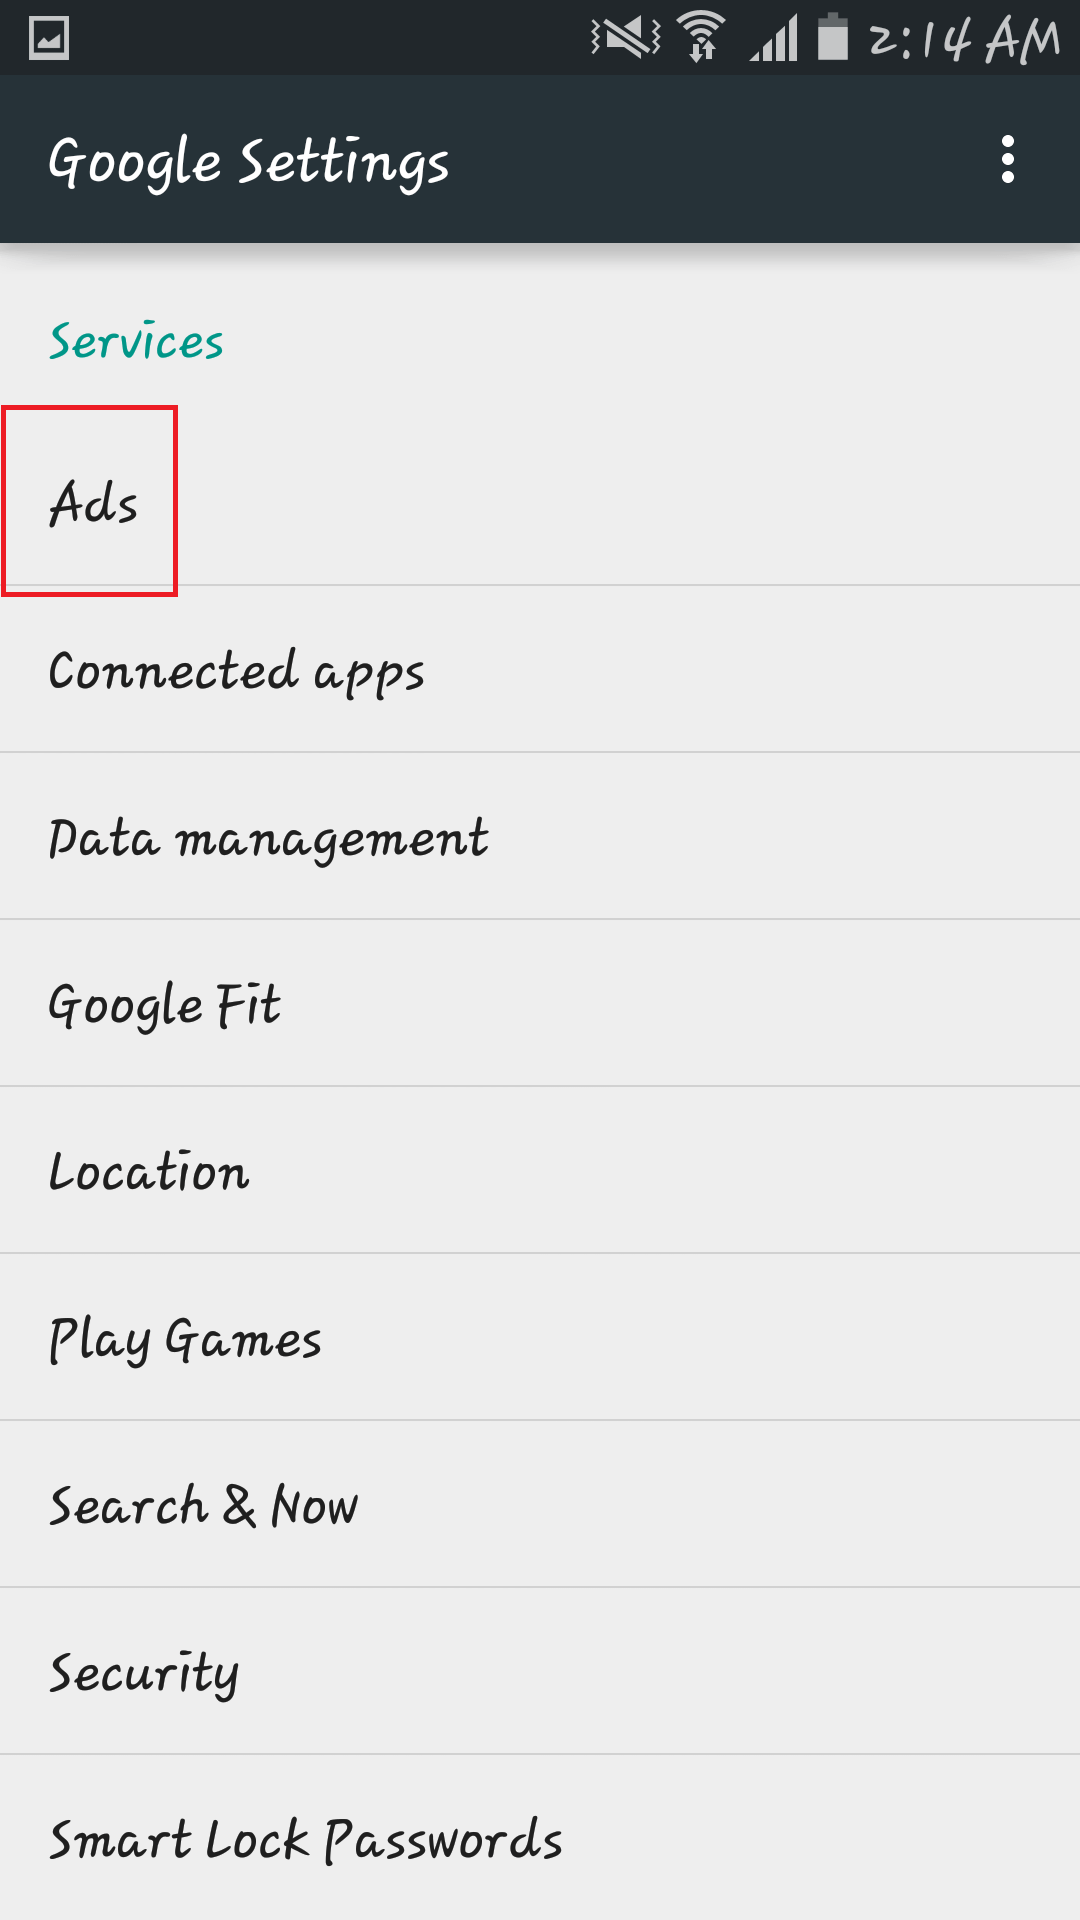 How to Stop Location Based Ads on Android